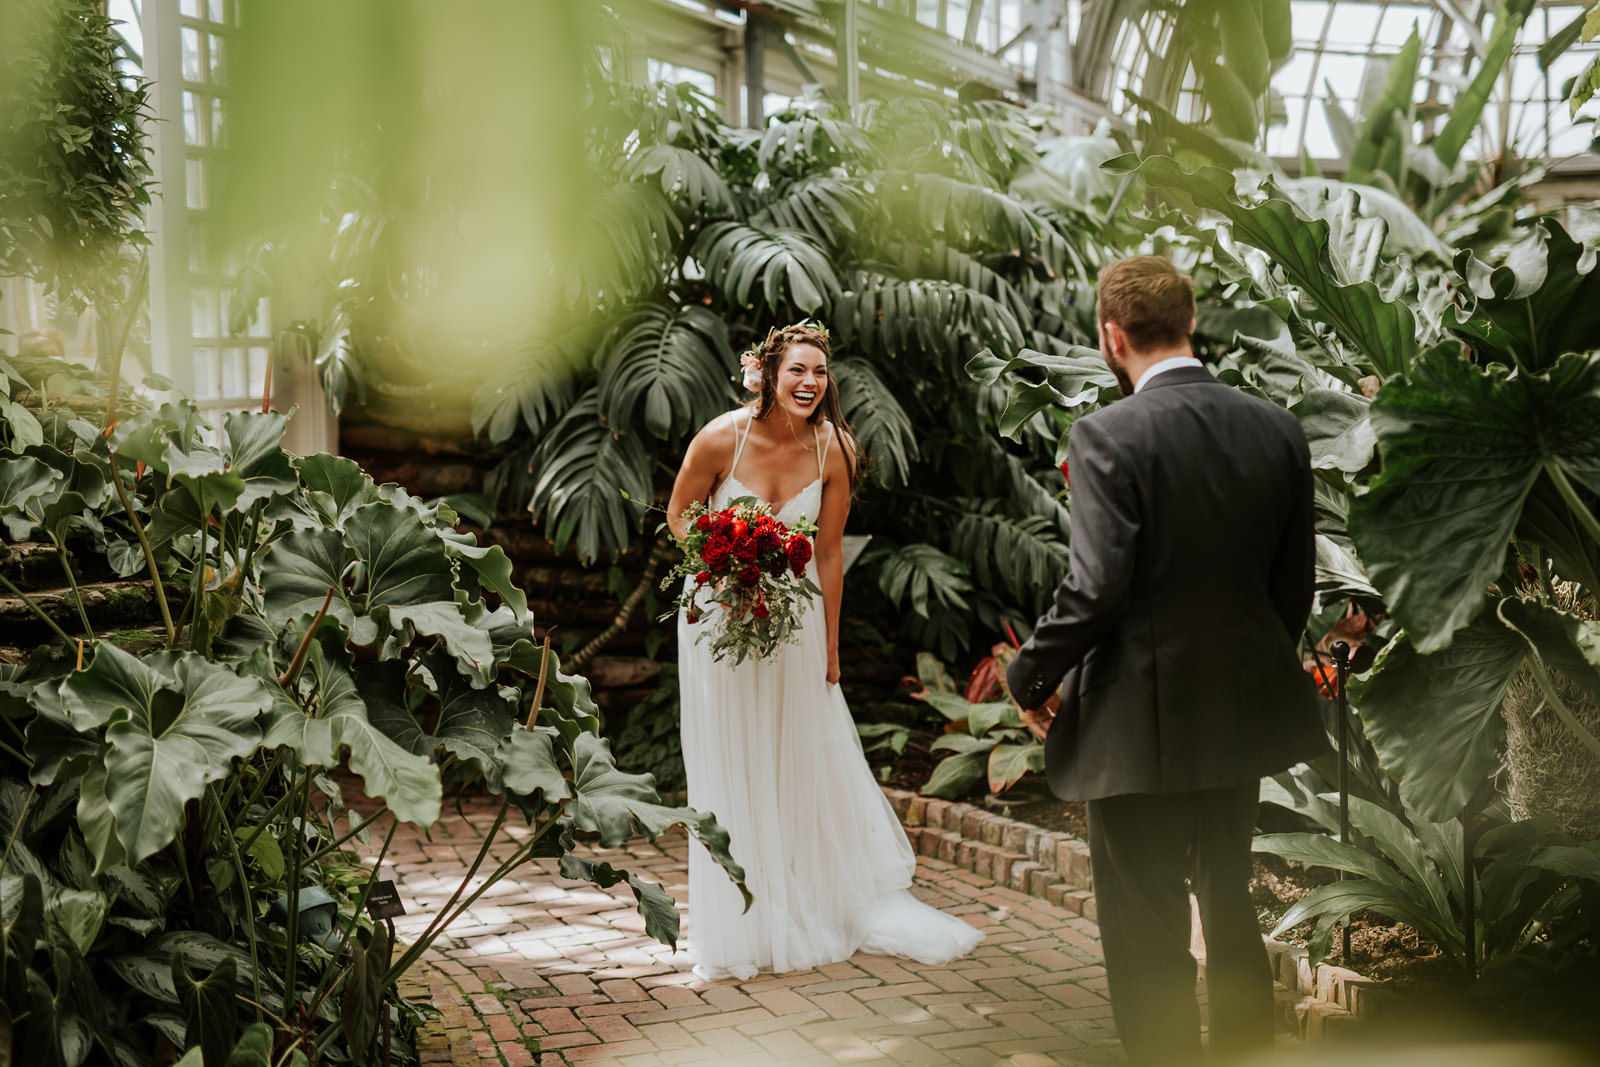 Garfield Park Conservatory Wedding.Intimate Backyard Wedding Chicago Chloe Josh Chicago